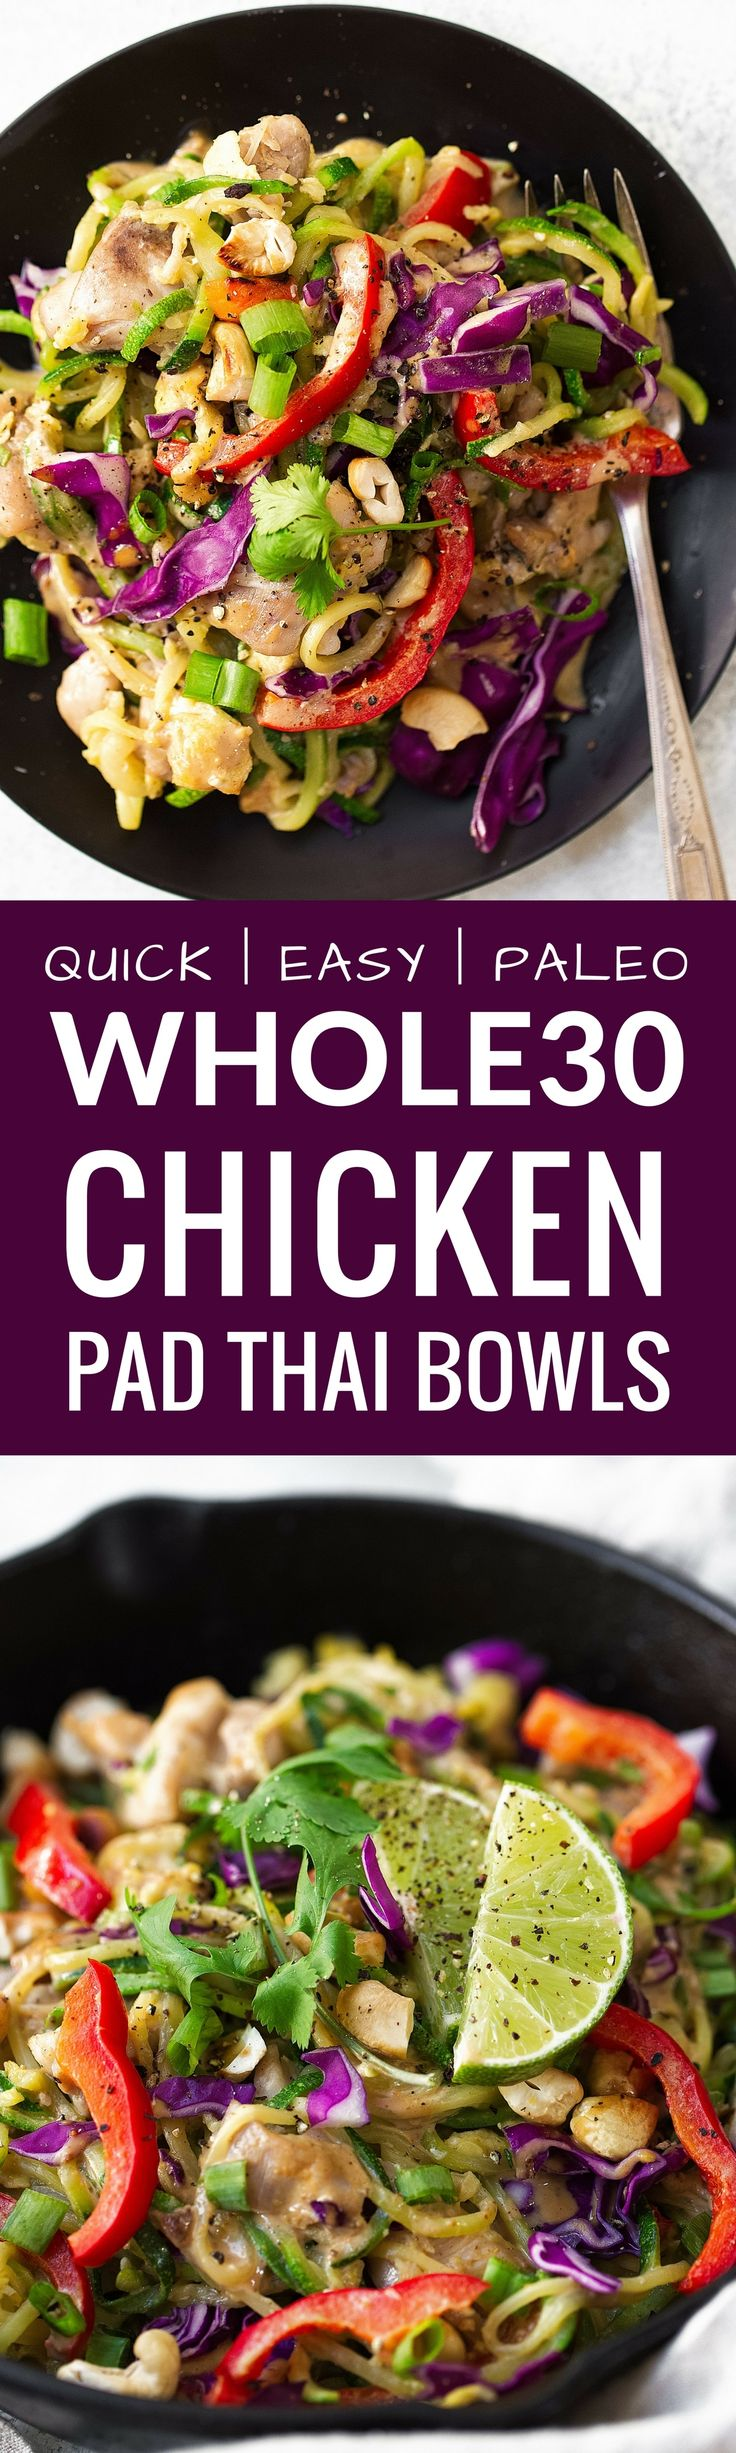 This recipe for Whole30 Chicken Pad Thai recipe is perfectly balanced with veggies, tender chicken thighs & a creamy Asian cashew sauce. Healthy whole30 chicken pad thai! Paleo chicken pad thai. Whole30 pad thai. Easy paleo dinner recipes. whole30 meal pl